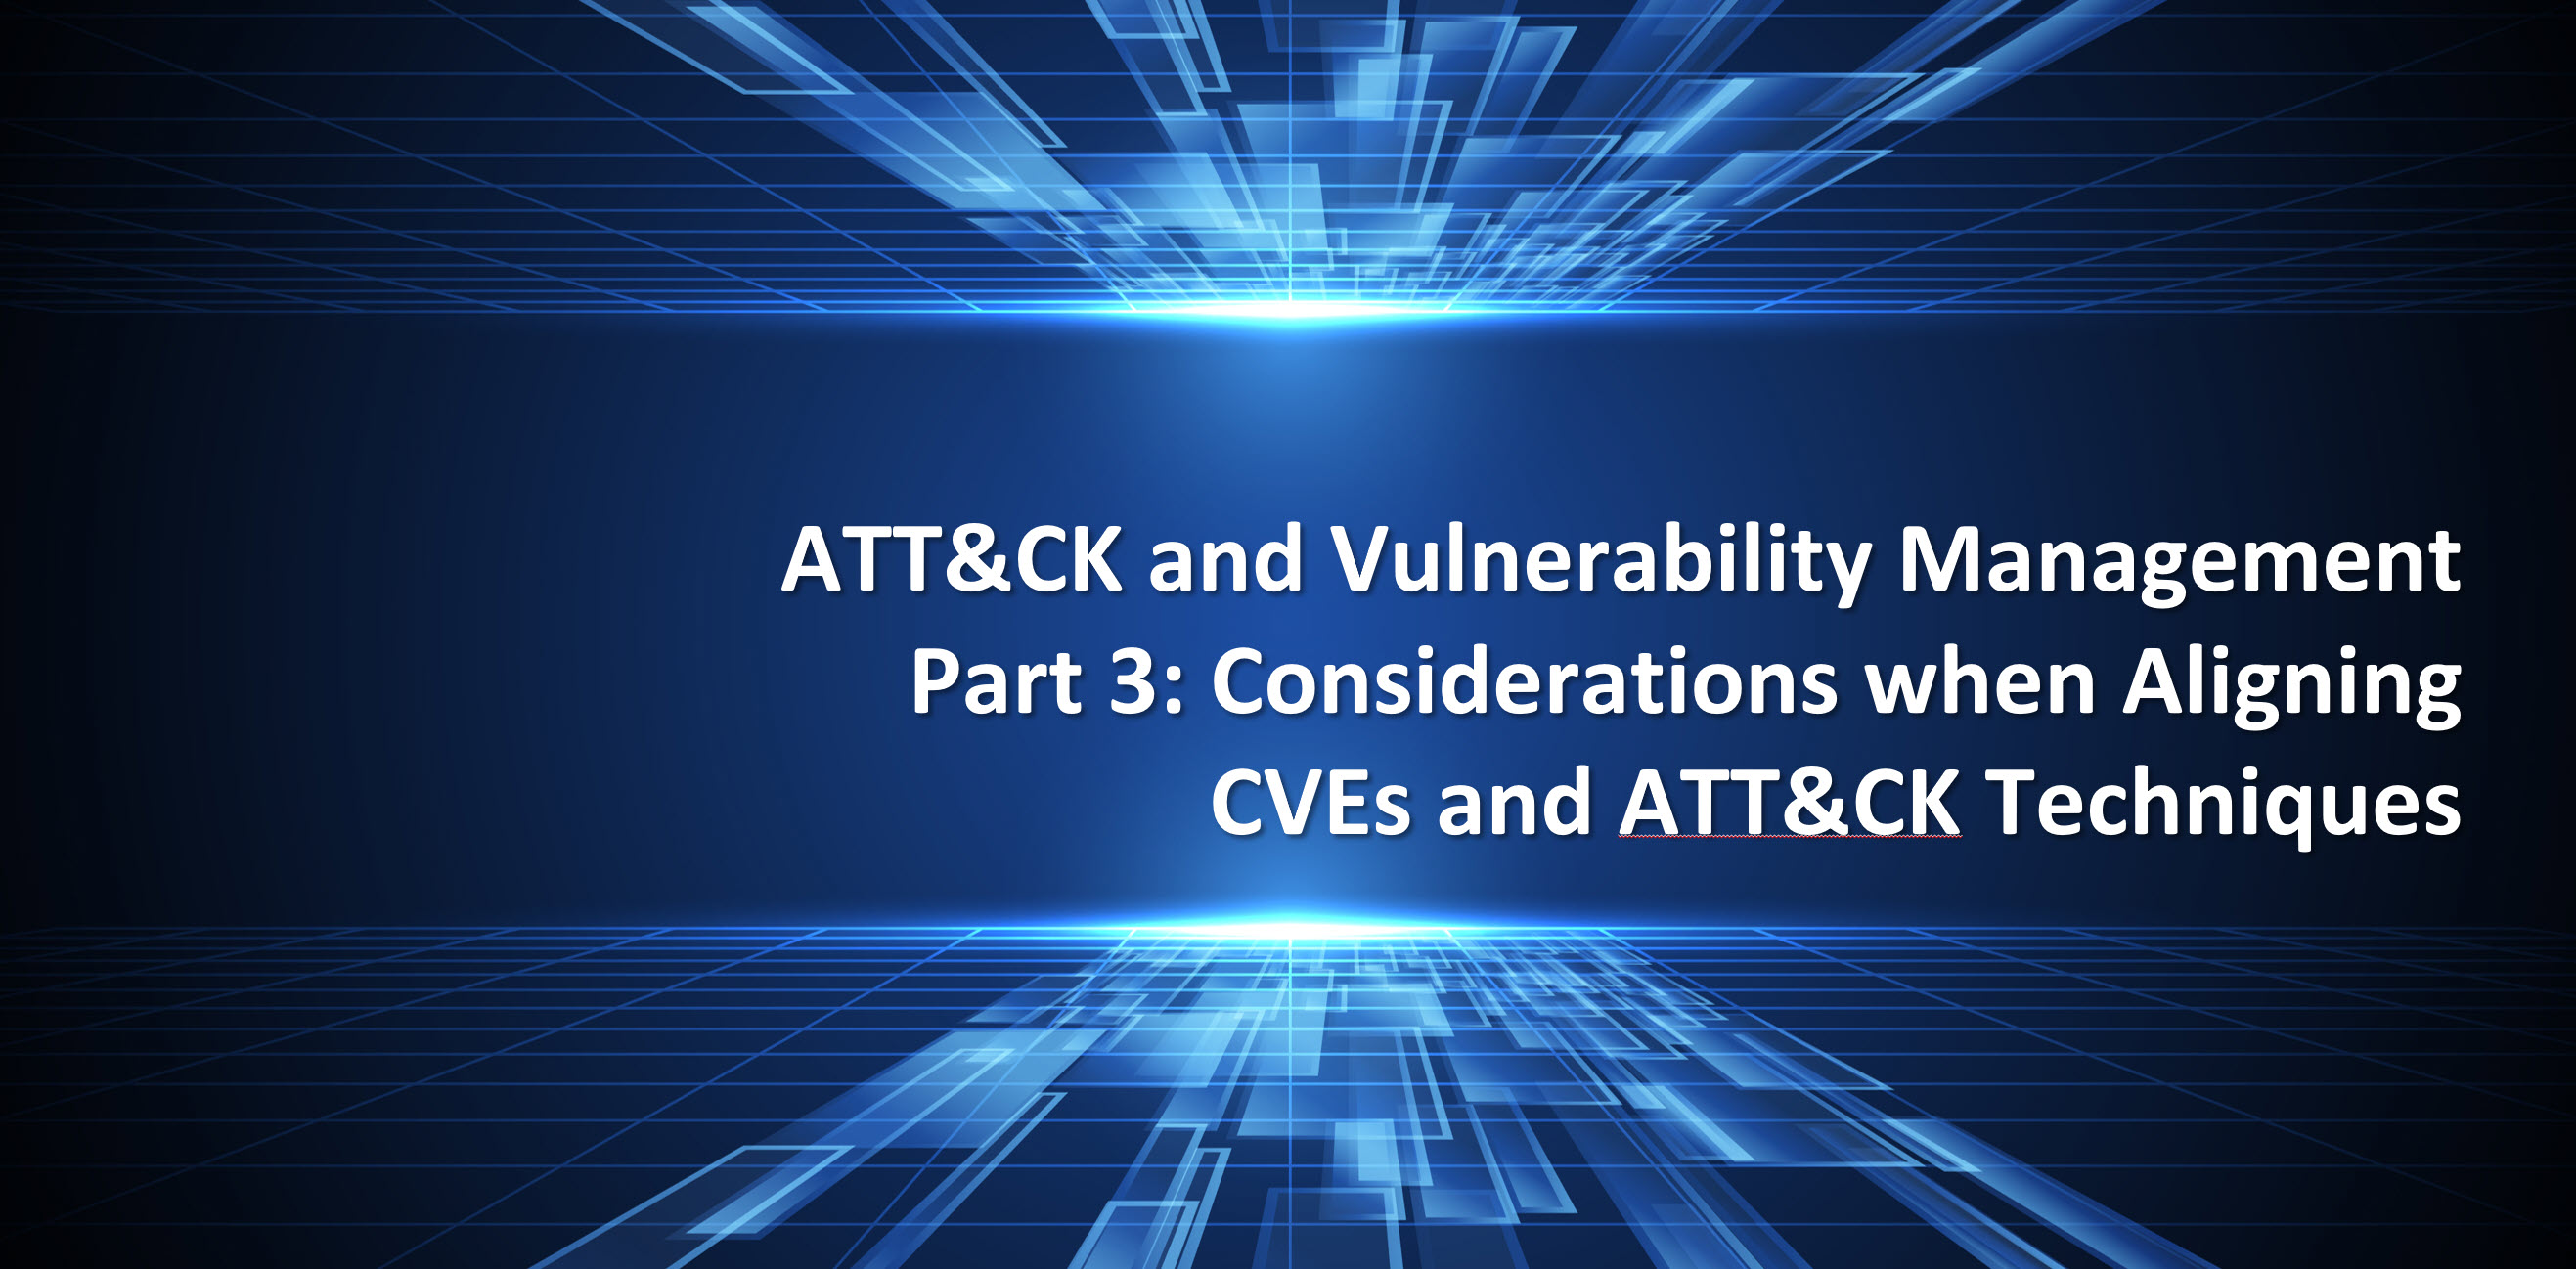 ATT&CK and Vulnerability Management Part 3Considerations inAligning